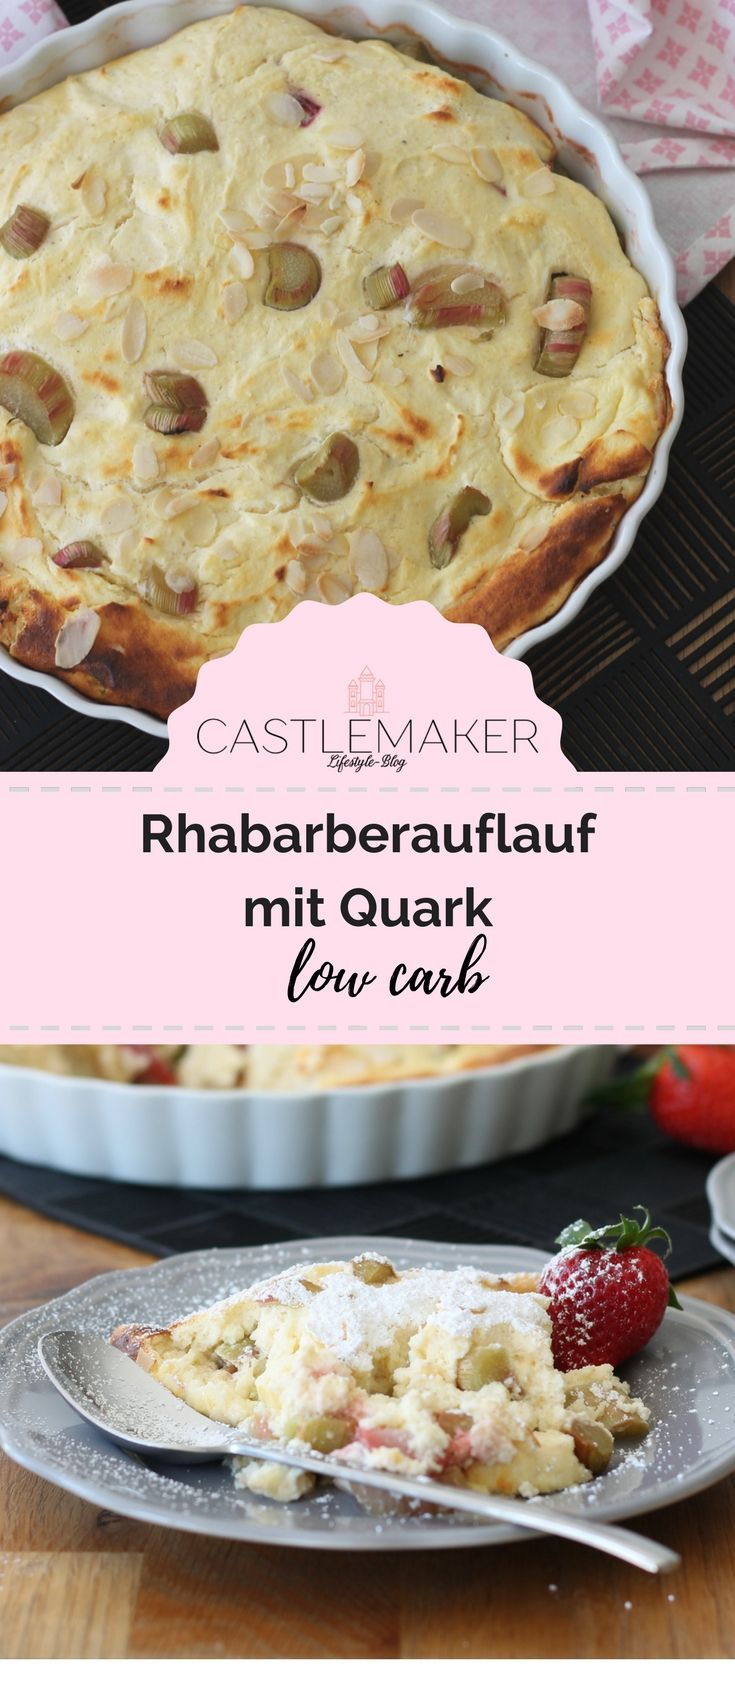 Photo of Rezept Rhabarberauflauf mit Quark – low carb